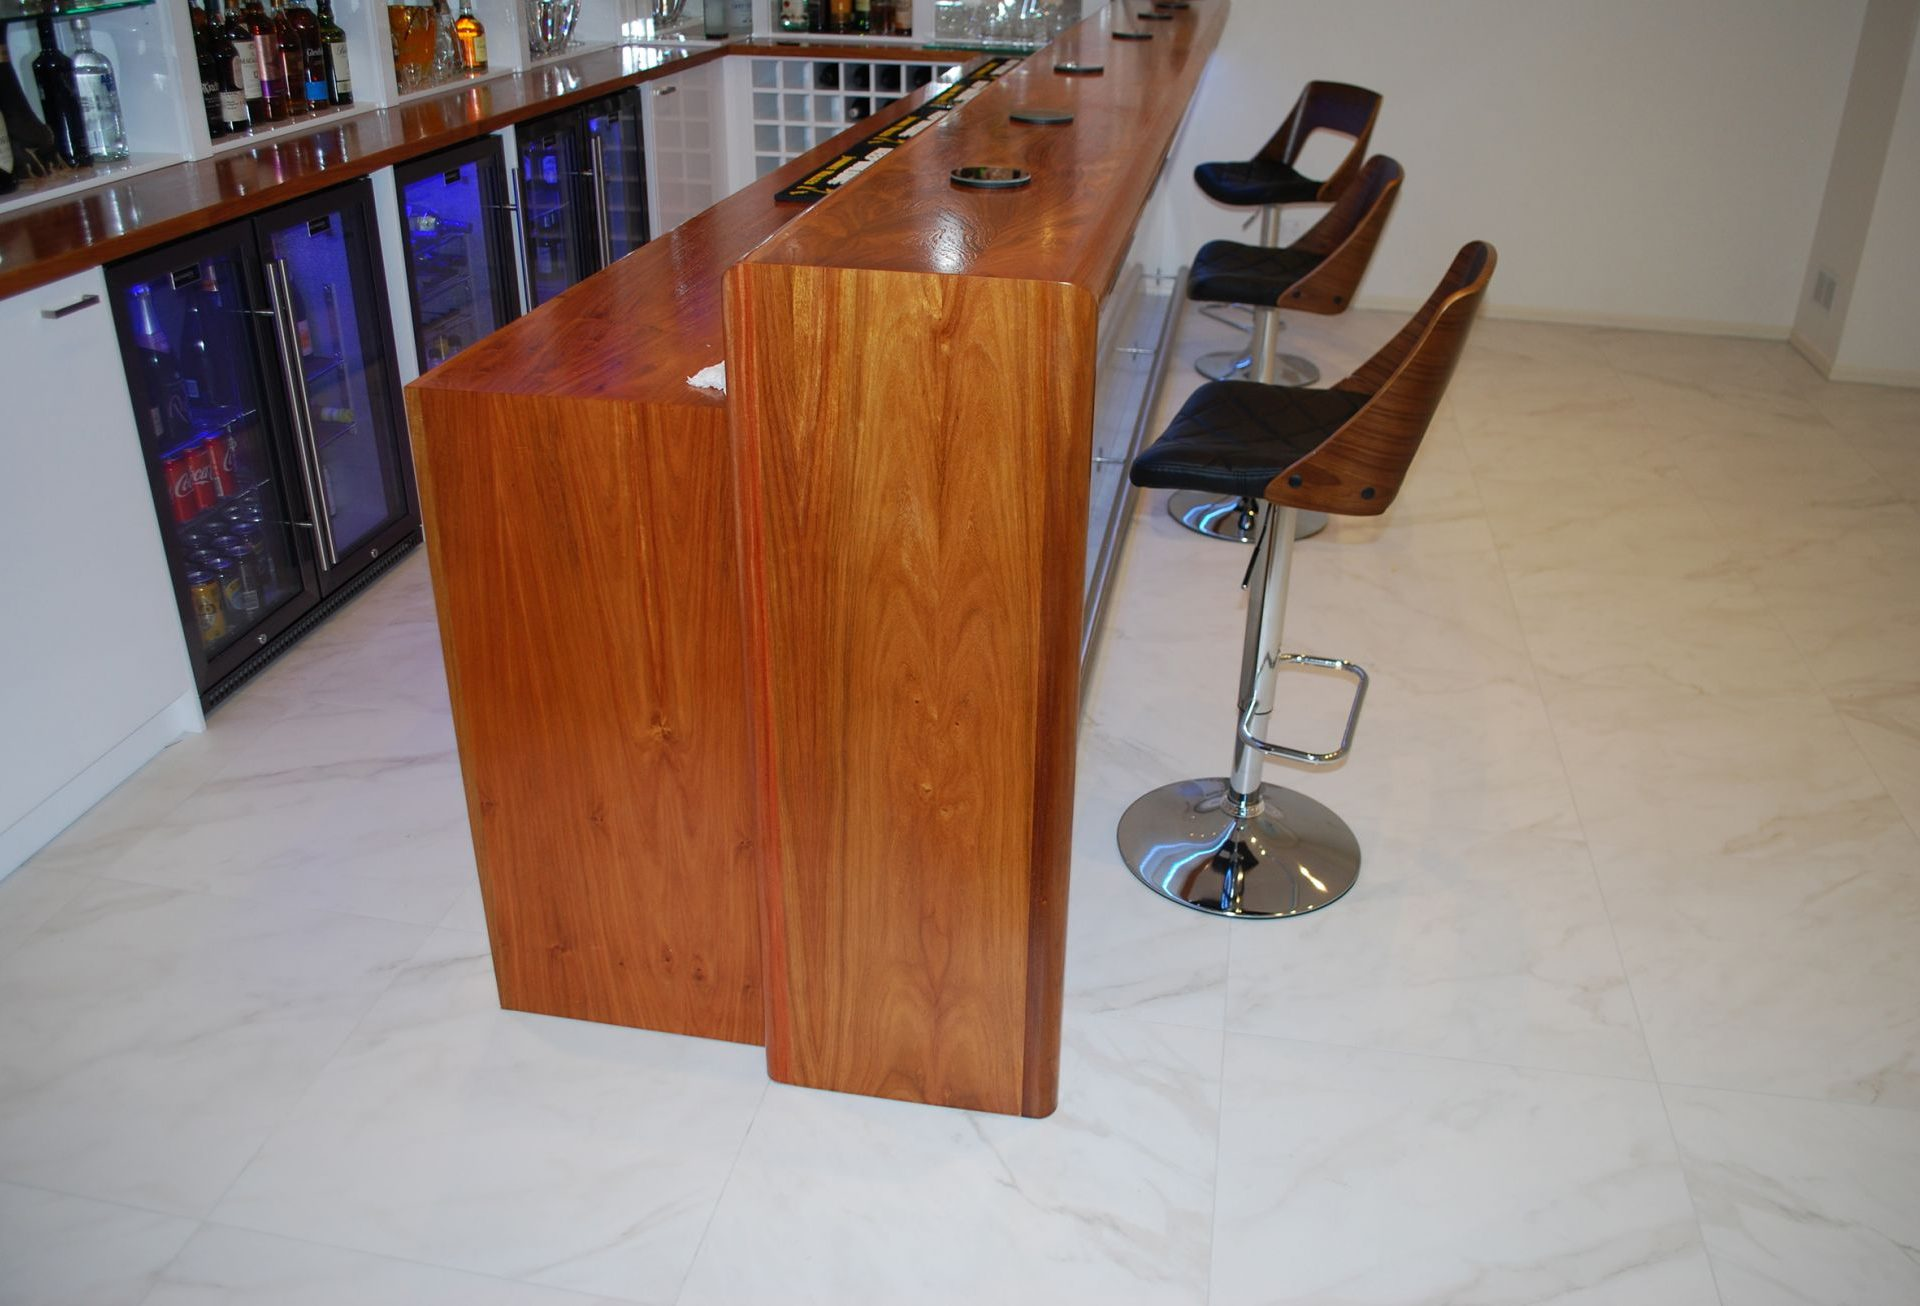 Wooden bar counter with white wall unit